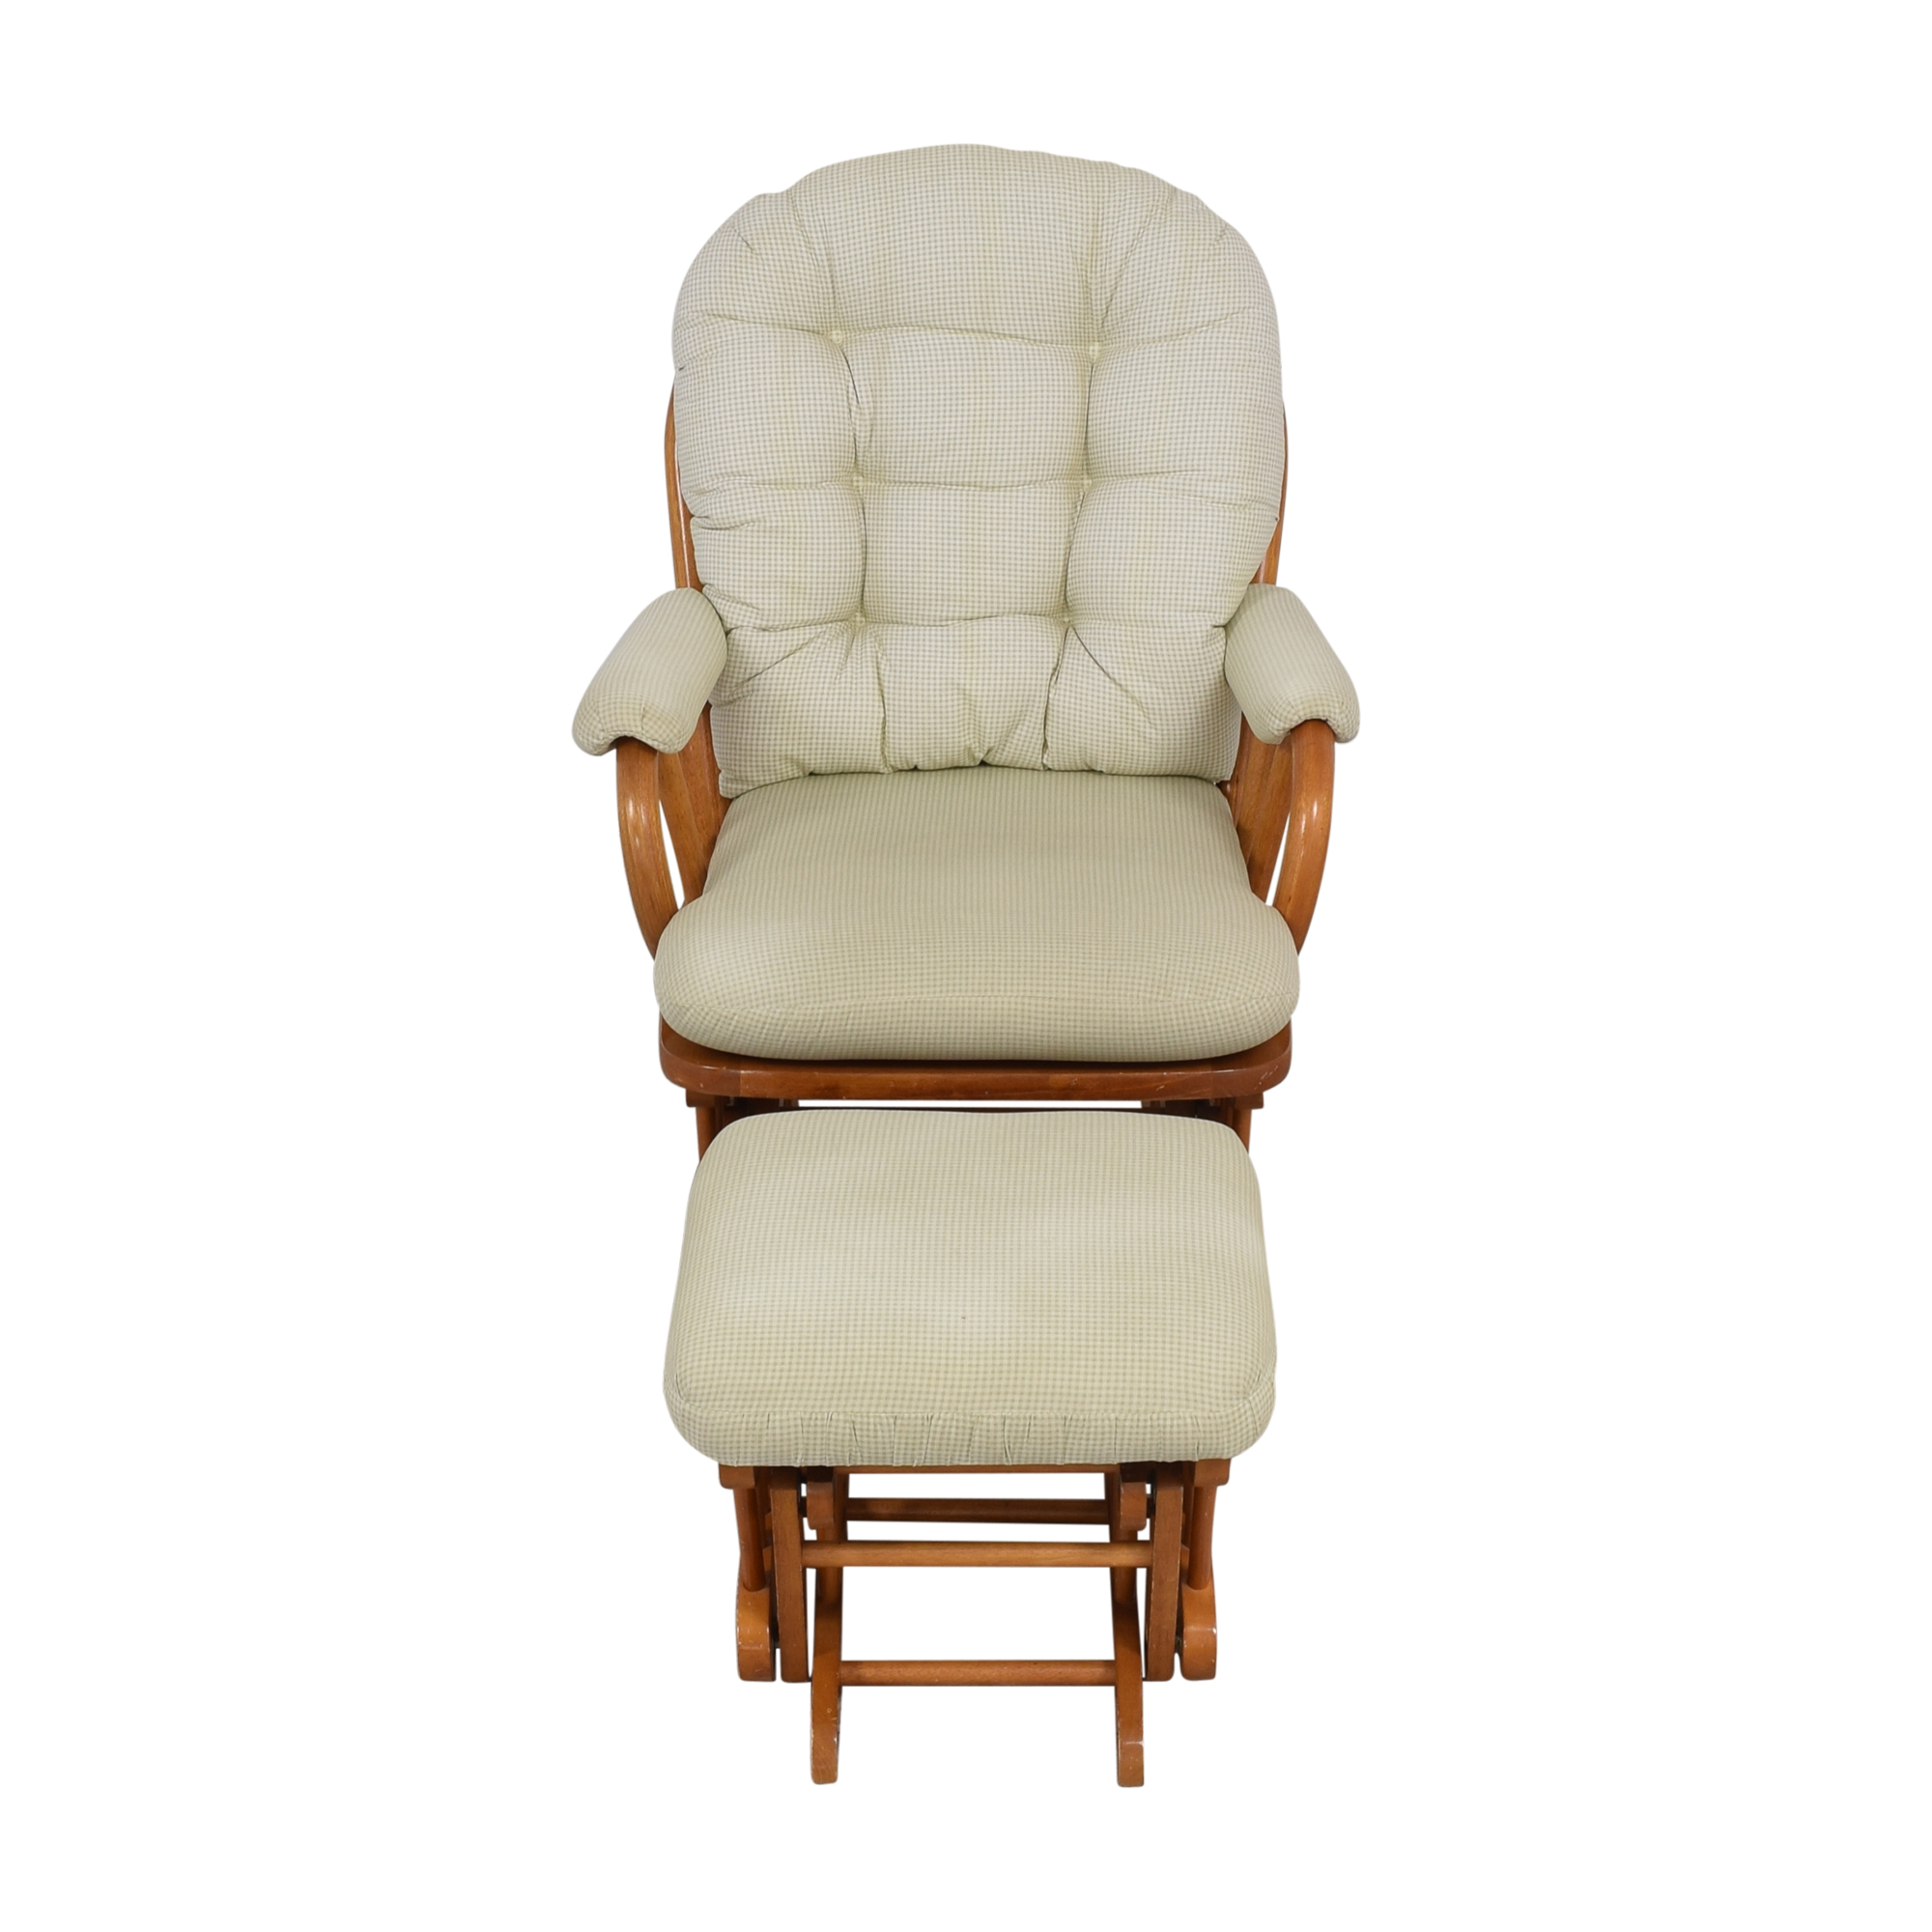 shop Best Chairs Best Chairs Bedazzle Glider and Ottoman online